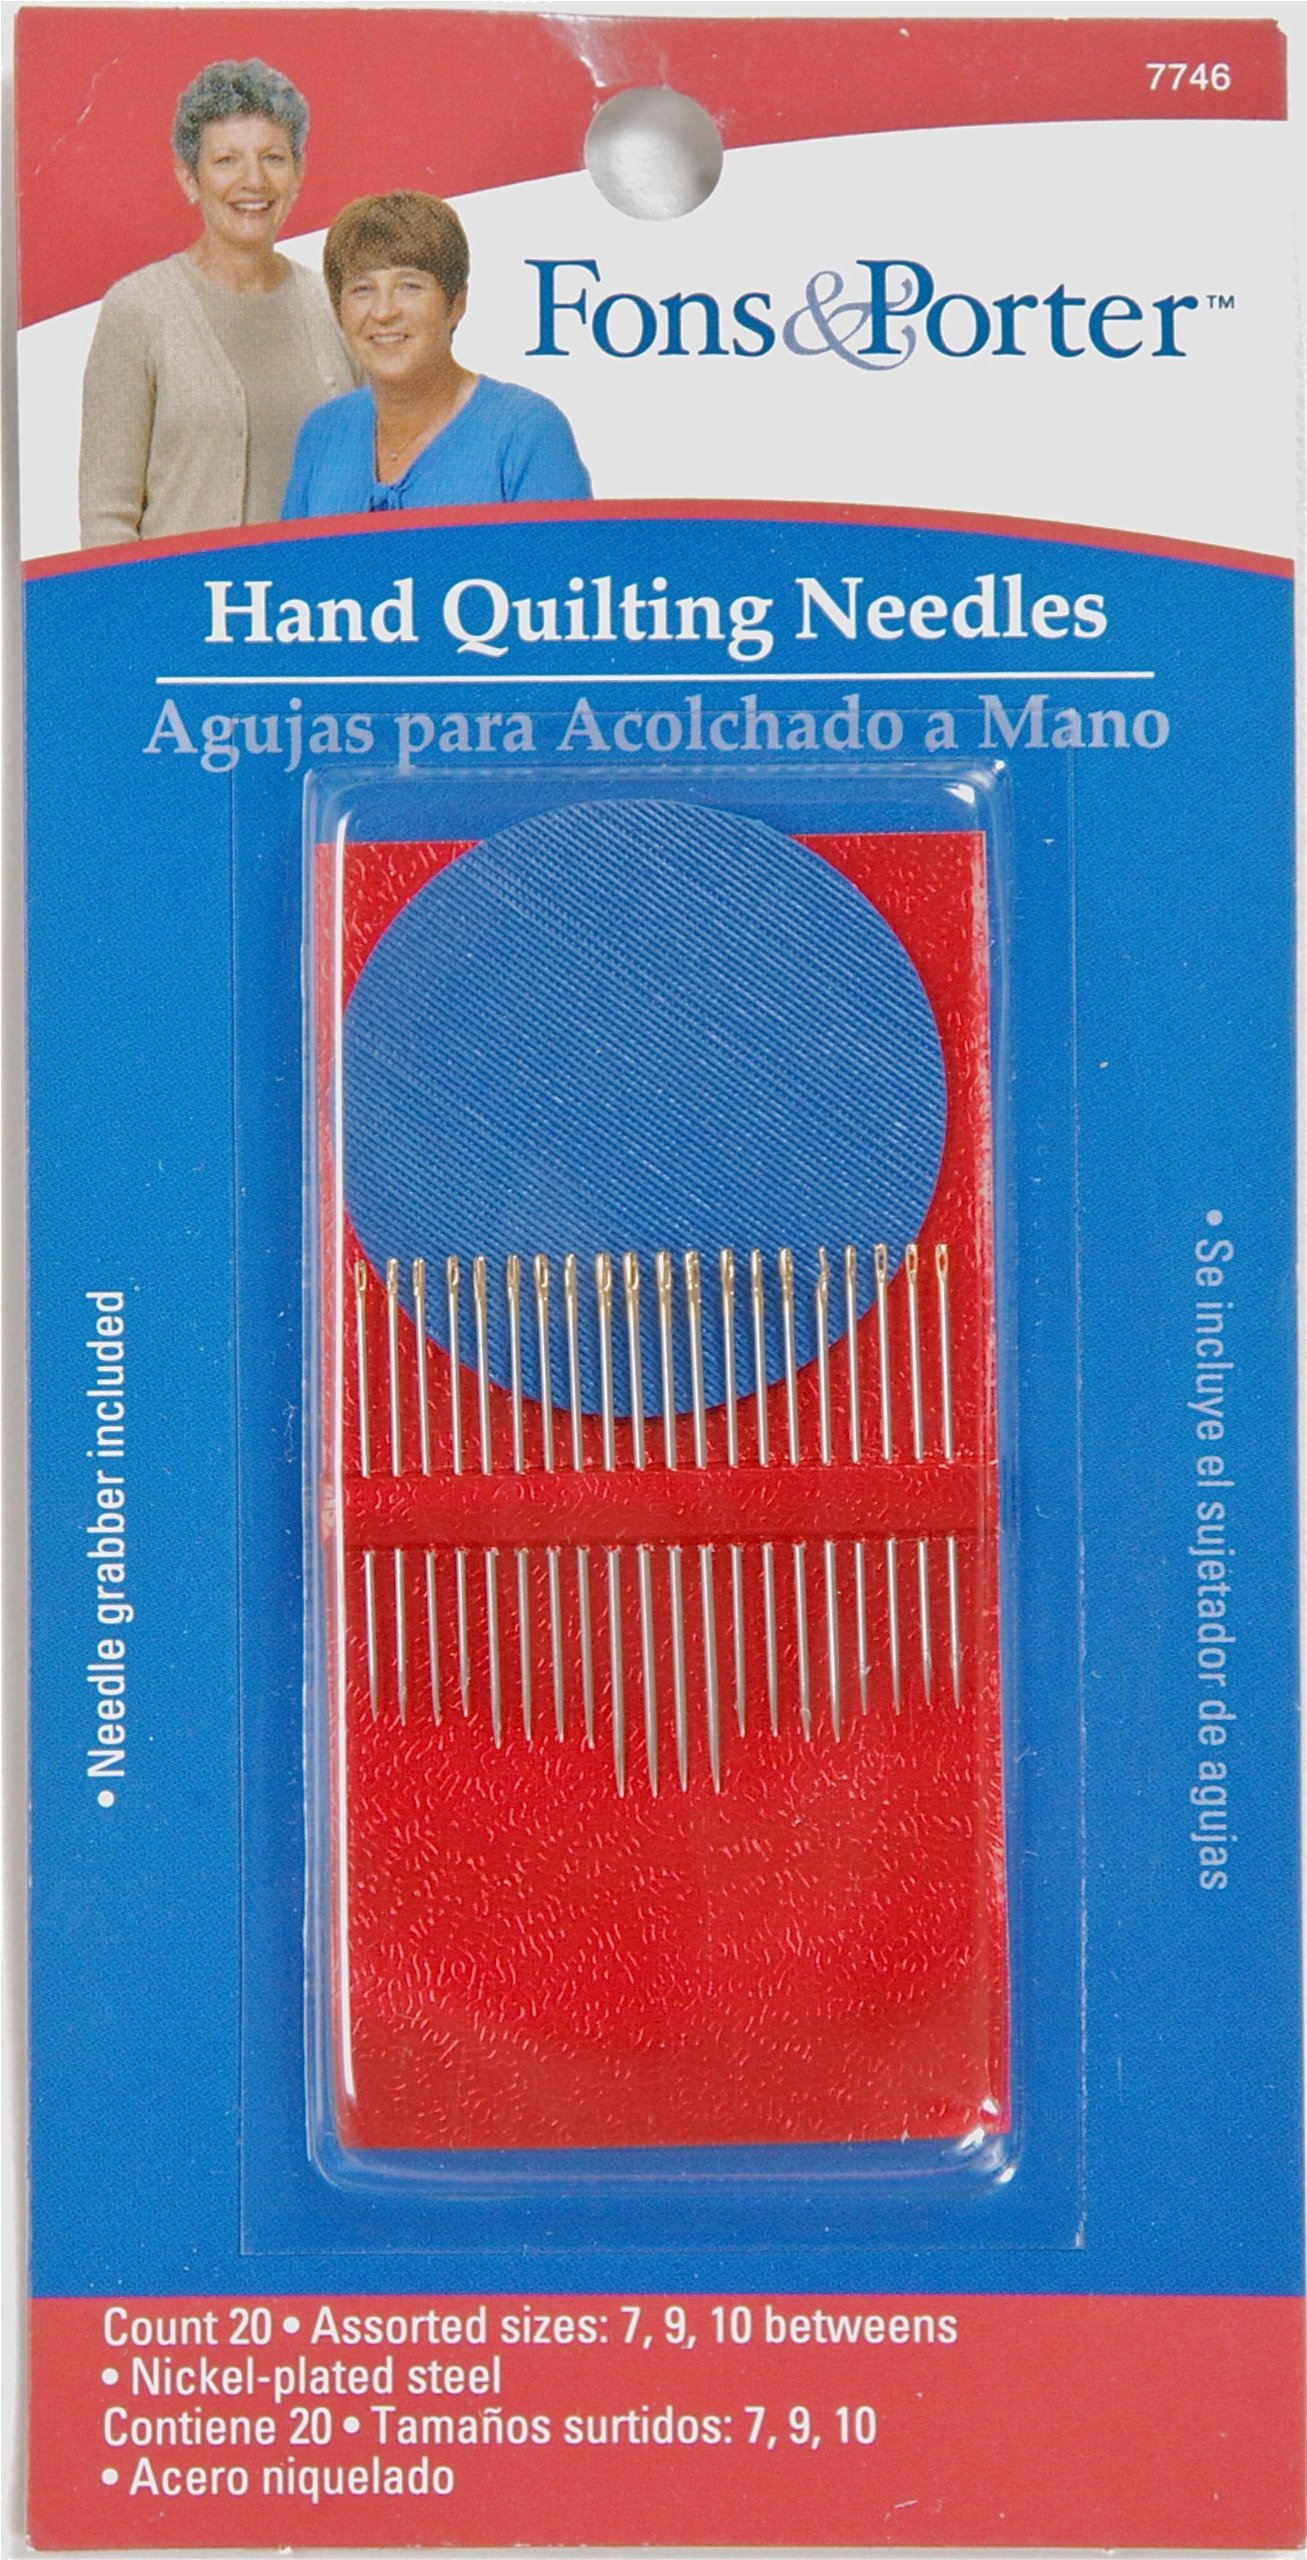 Fon & Porter Hand Quilting Needles, Size 7, 9, 10, 20-Count